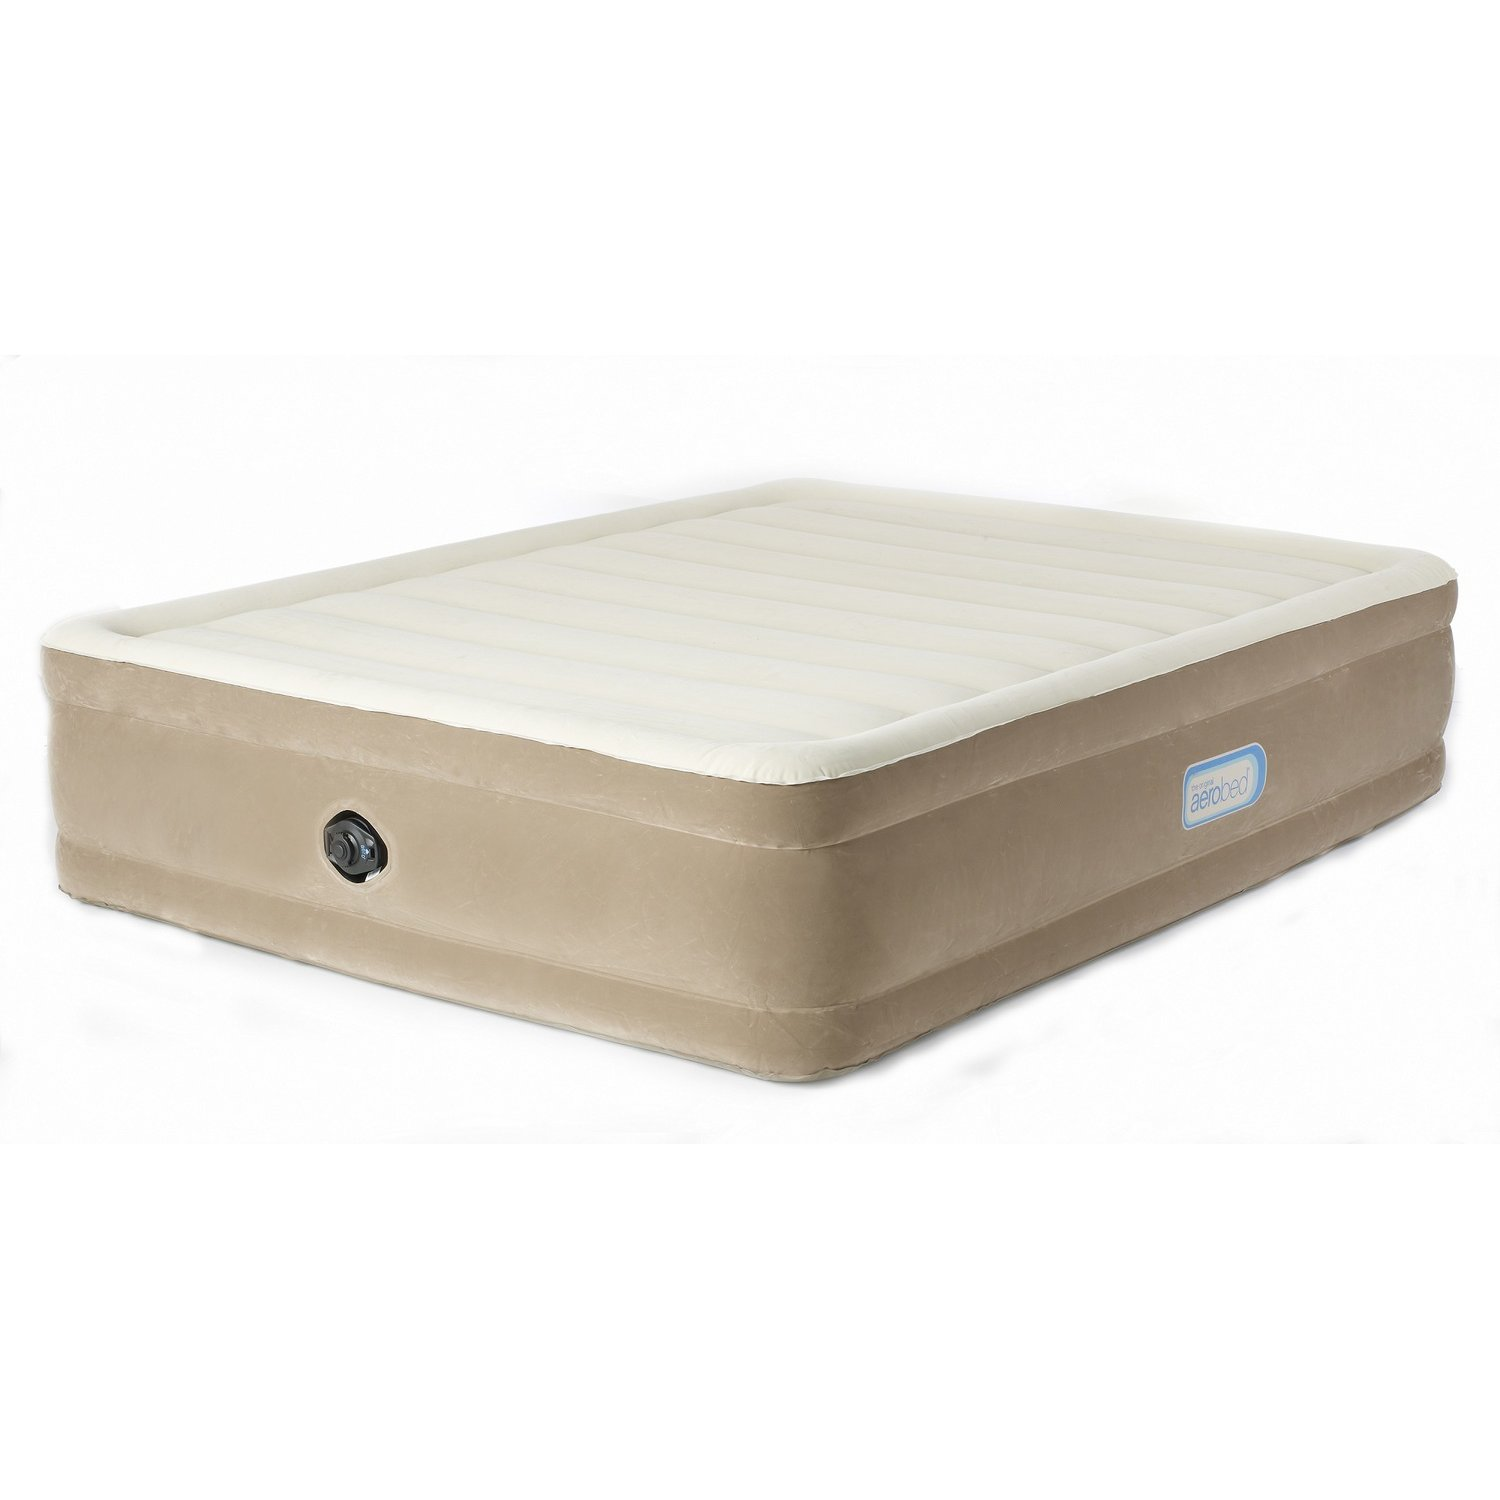 image-Aerobed Comfort Raised King Size Air Bed